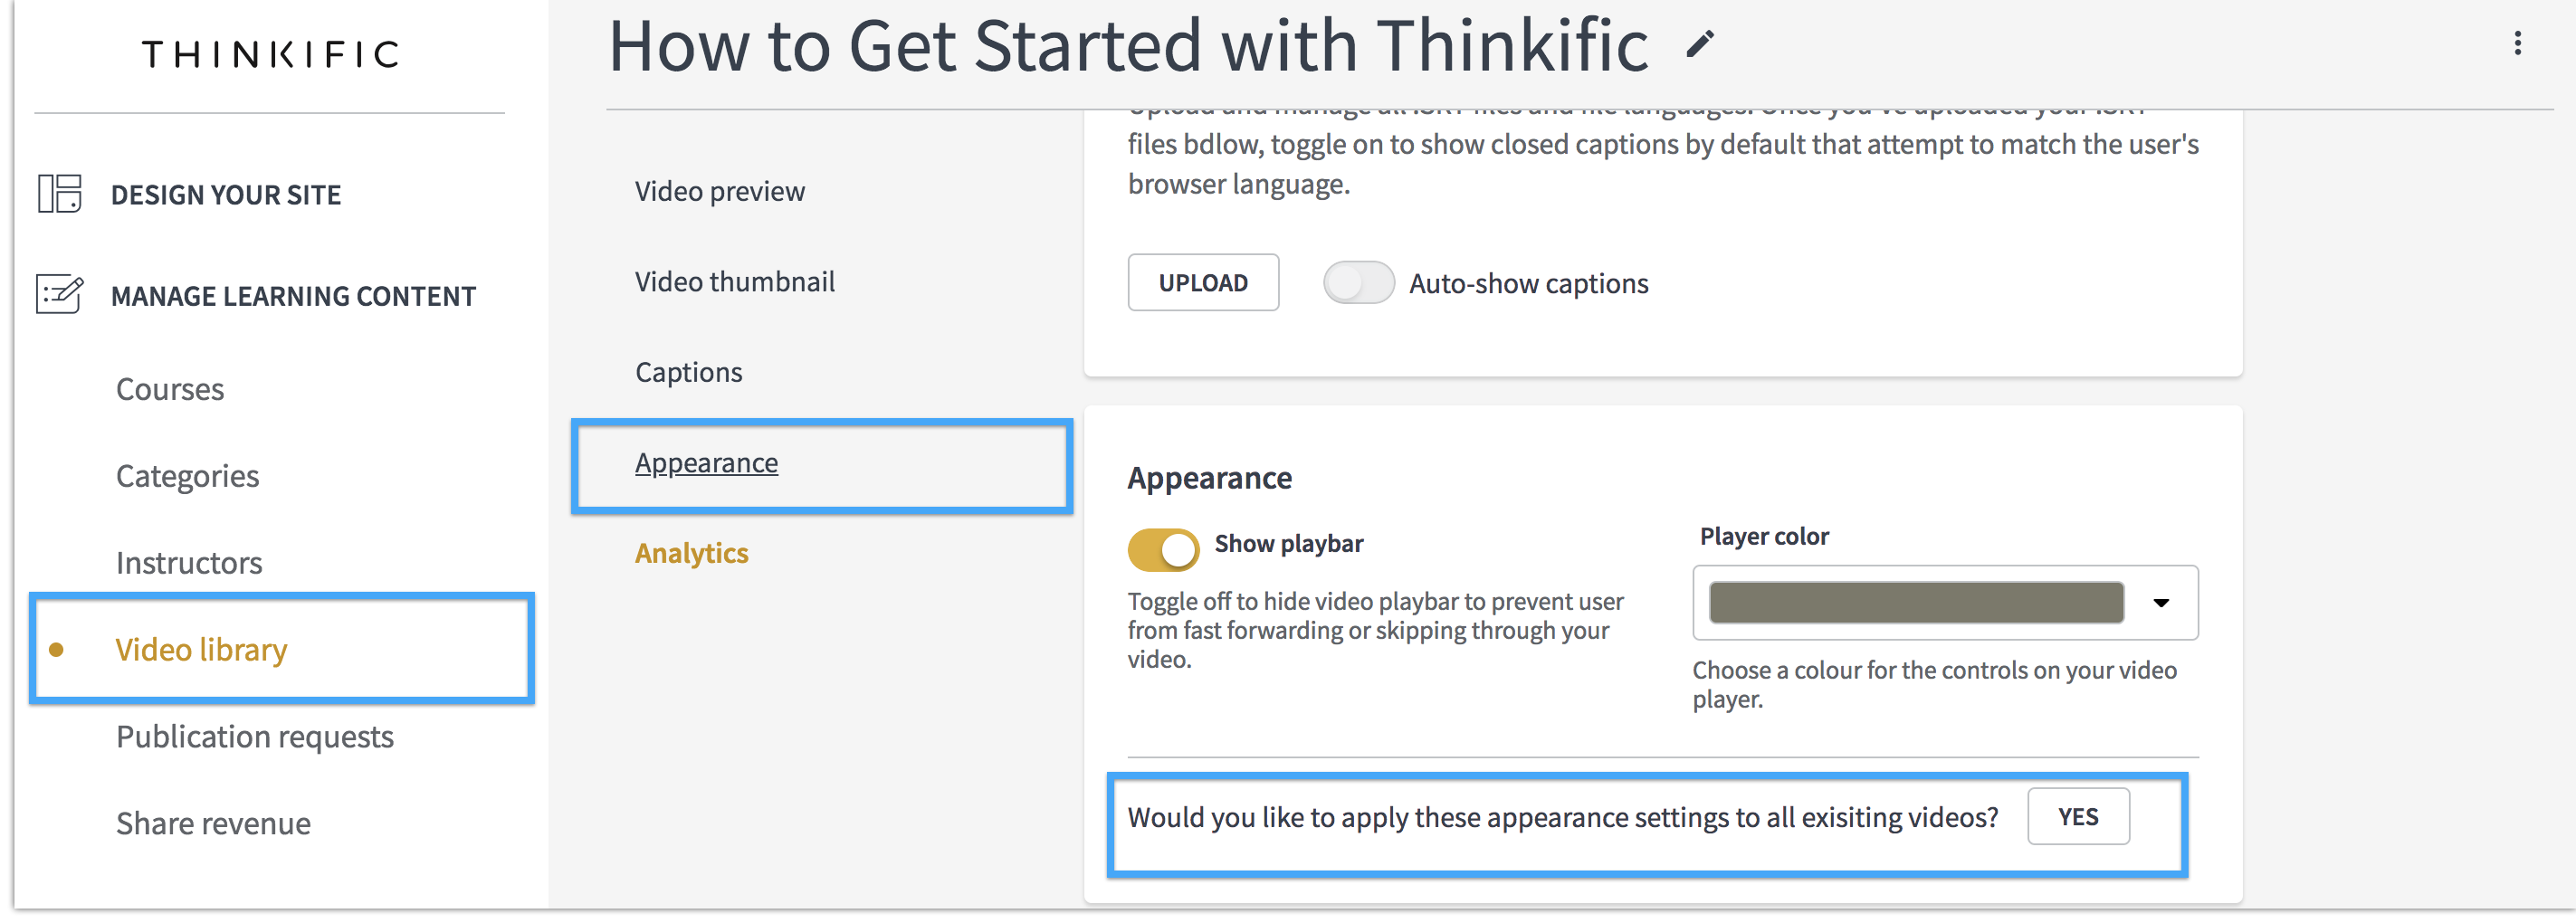 Change the Color of Your Video Player : Thinkific